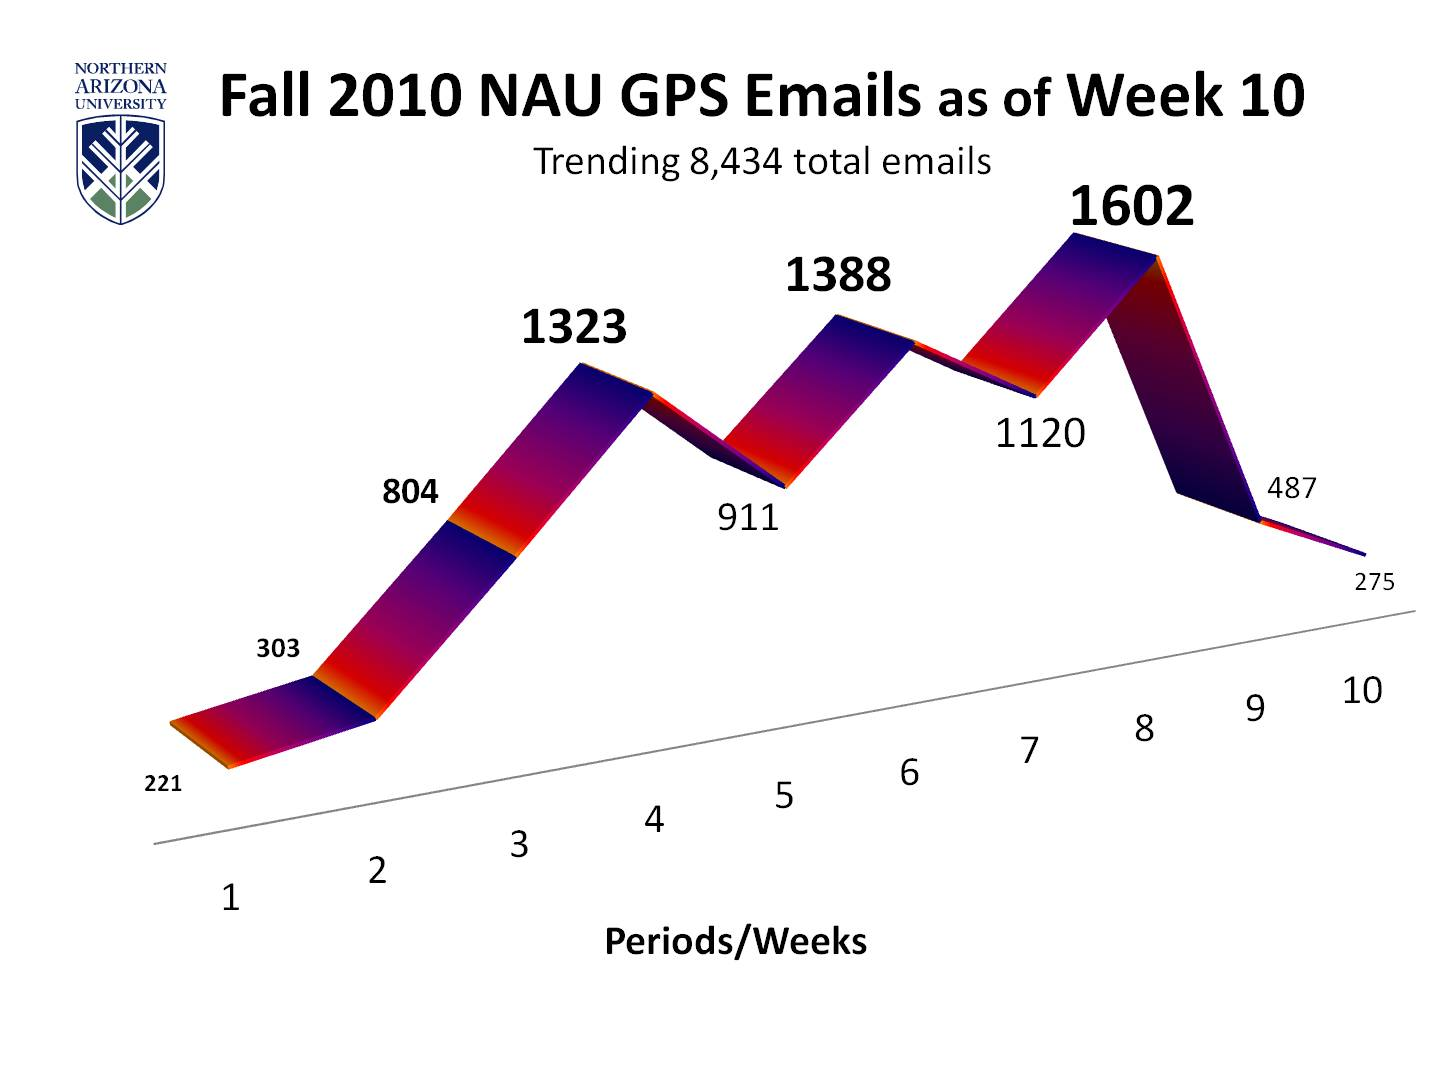 image is a line graph Title is Fall 2010 NAU GPS Emails as of Week 10 Subtitle is Trending 8,434 total emails Number of emails sent each week was 221 in week 1(represents the lowest number of emails sent in a week), 303 in week 2, 804 in week 3, 1,323 in week 4, 911 in week 5, 1,388 in week 6, 1,120 in week 7, 1,602 in week 8 (represents the highest numbers of emails sent in a week), 487 in week 9, and 275 in week  10.